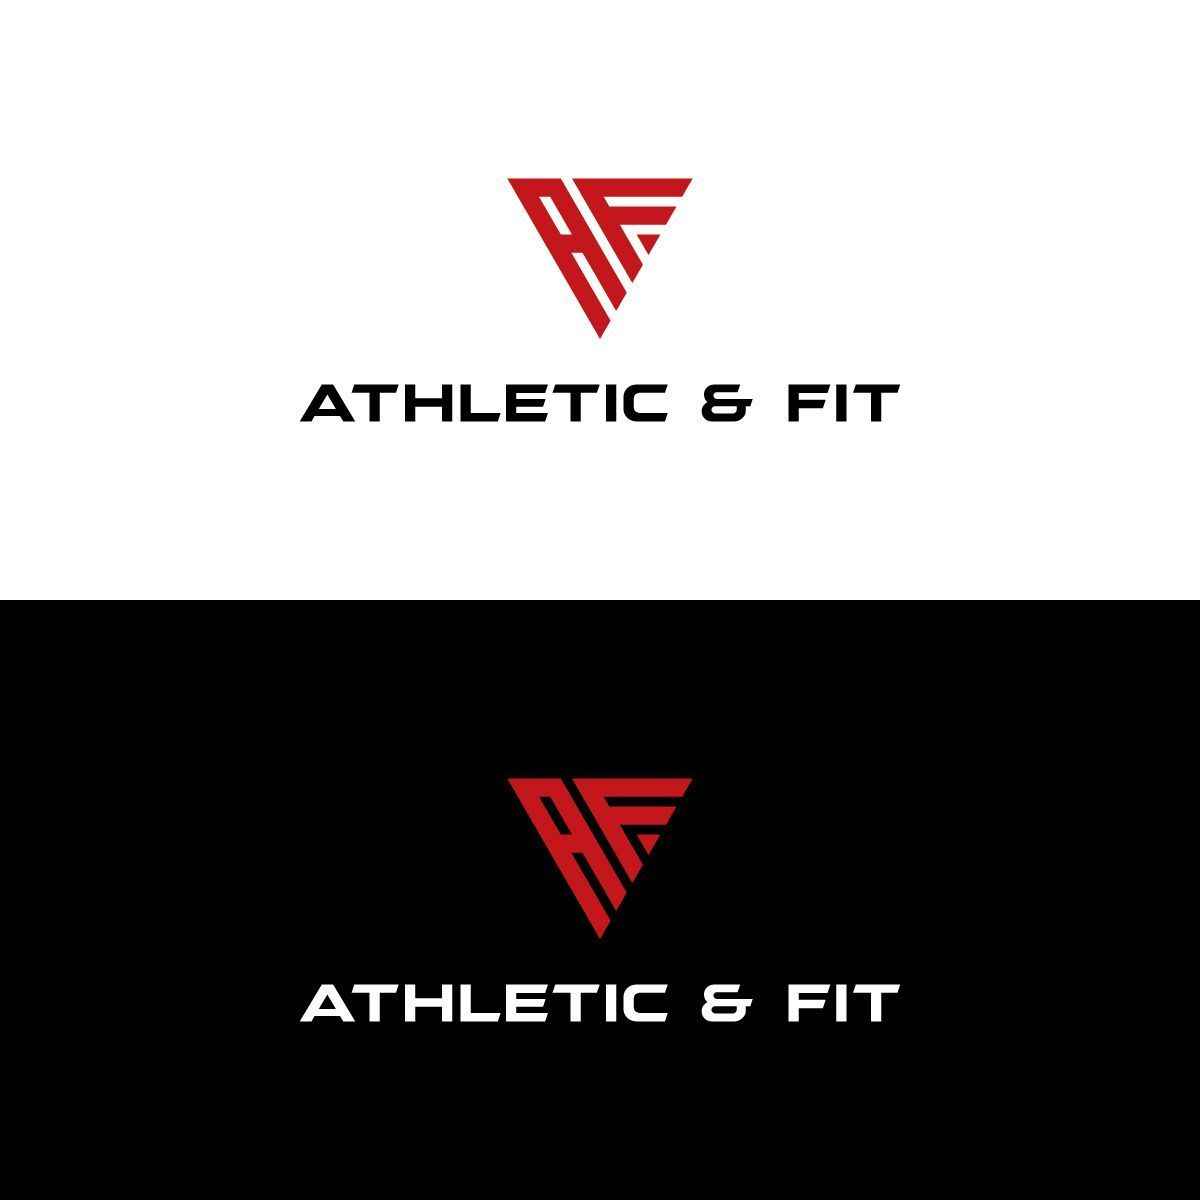 70 Fitness Logos For Personal Trainers, Gyms amp; Yoga Studios #fitness #logos #personal #studios #t...